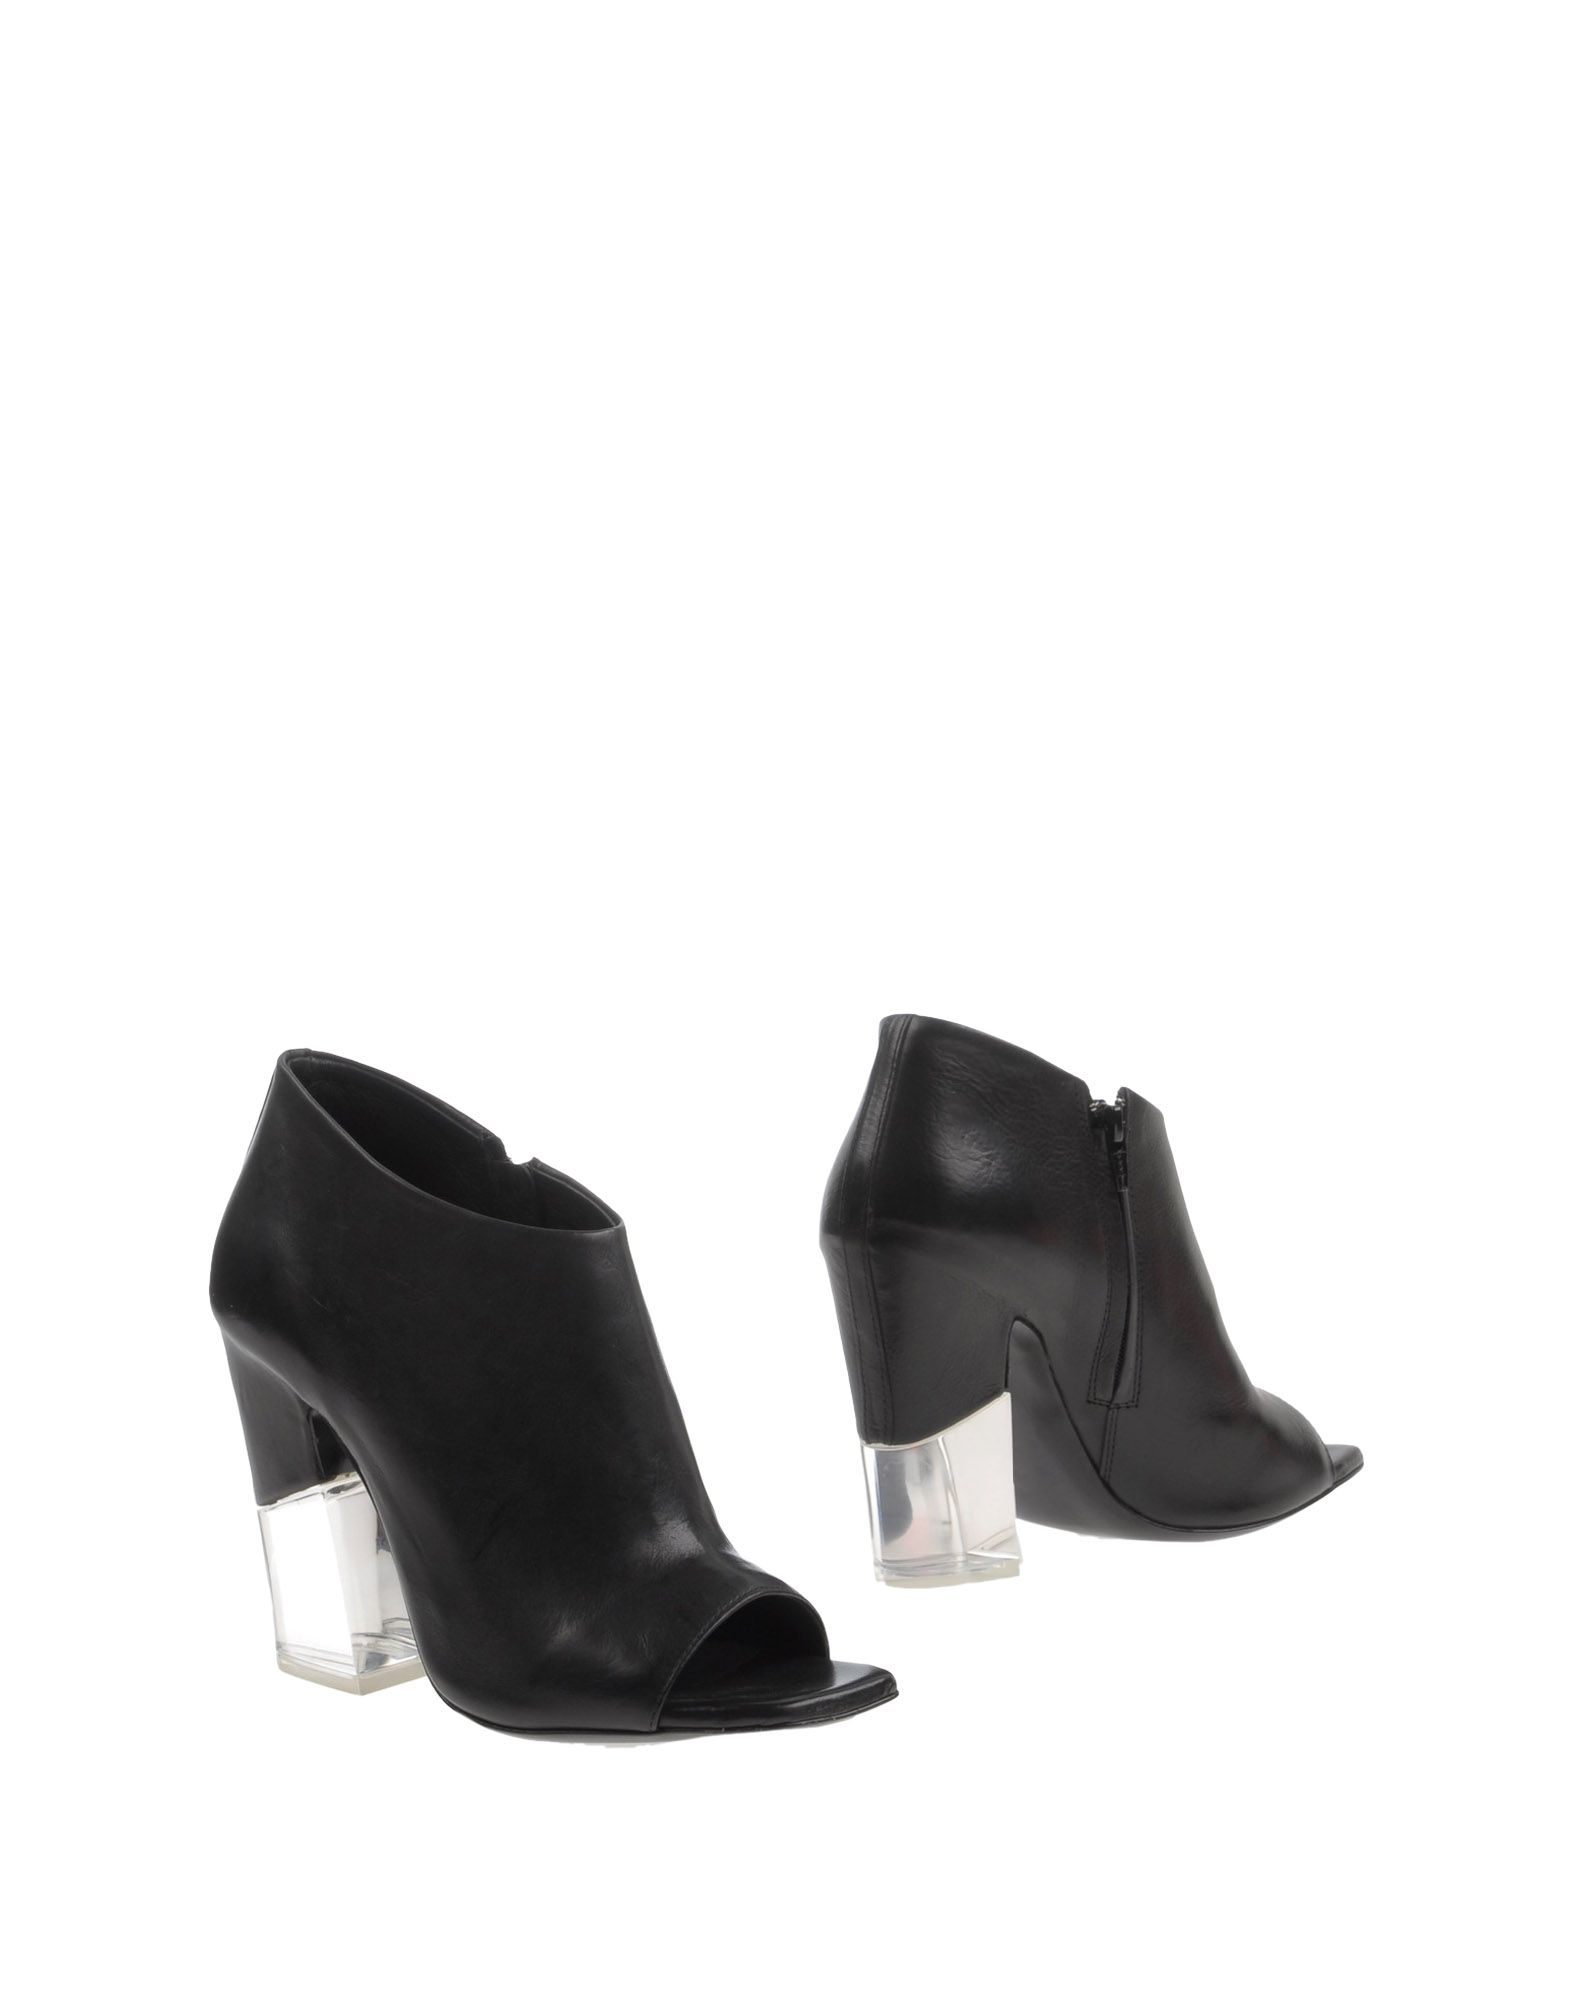 Vic Matiē Ankle Boot - Women Vic on Matiē Ankle Boots online on Vic  Australia - 11355030CG cbdce6